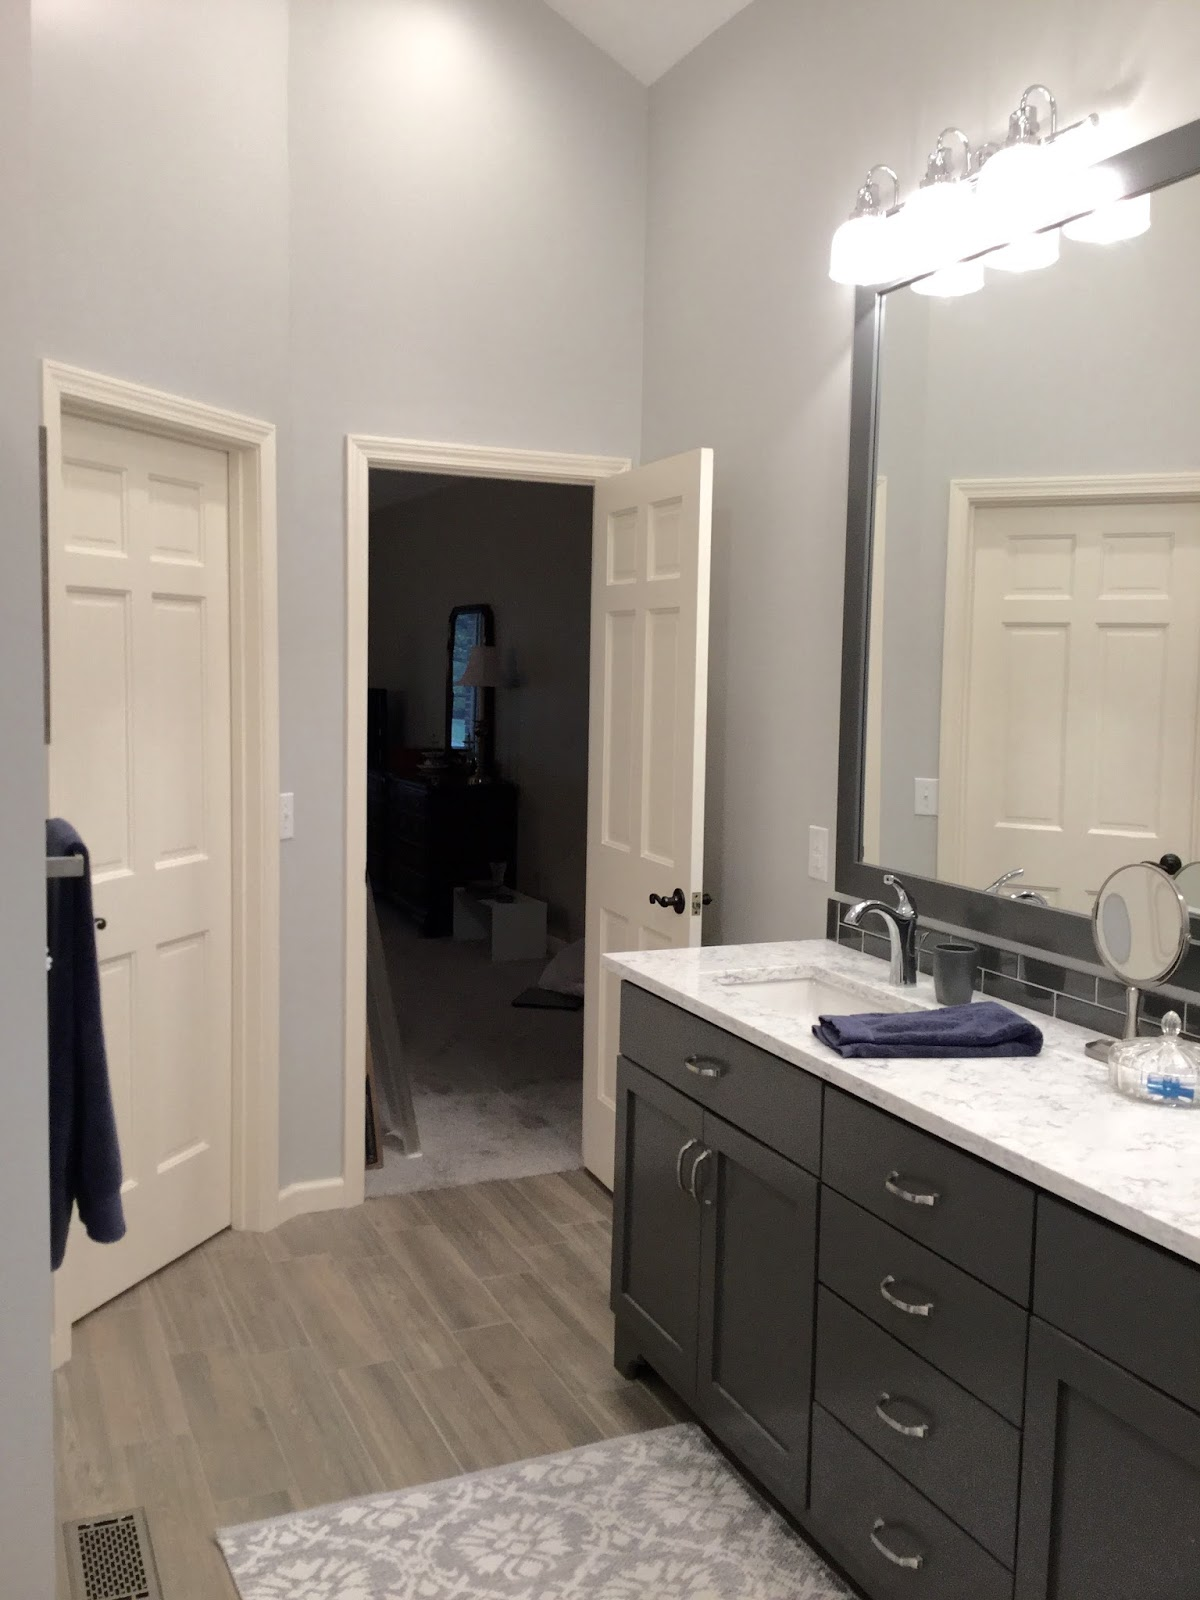 Spectacular Hope you enjoyed seeing this Master Bathroom en suite renovation e to life Onto the next project